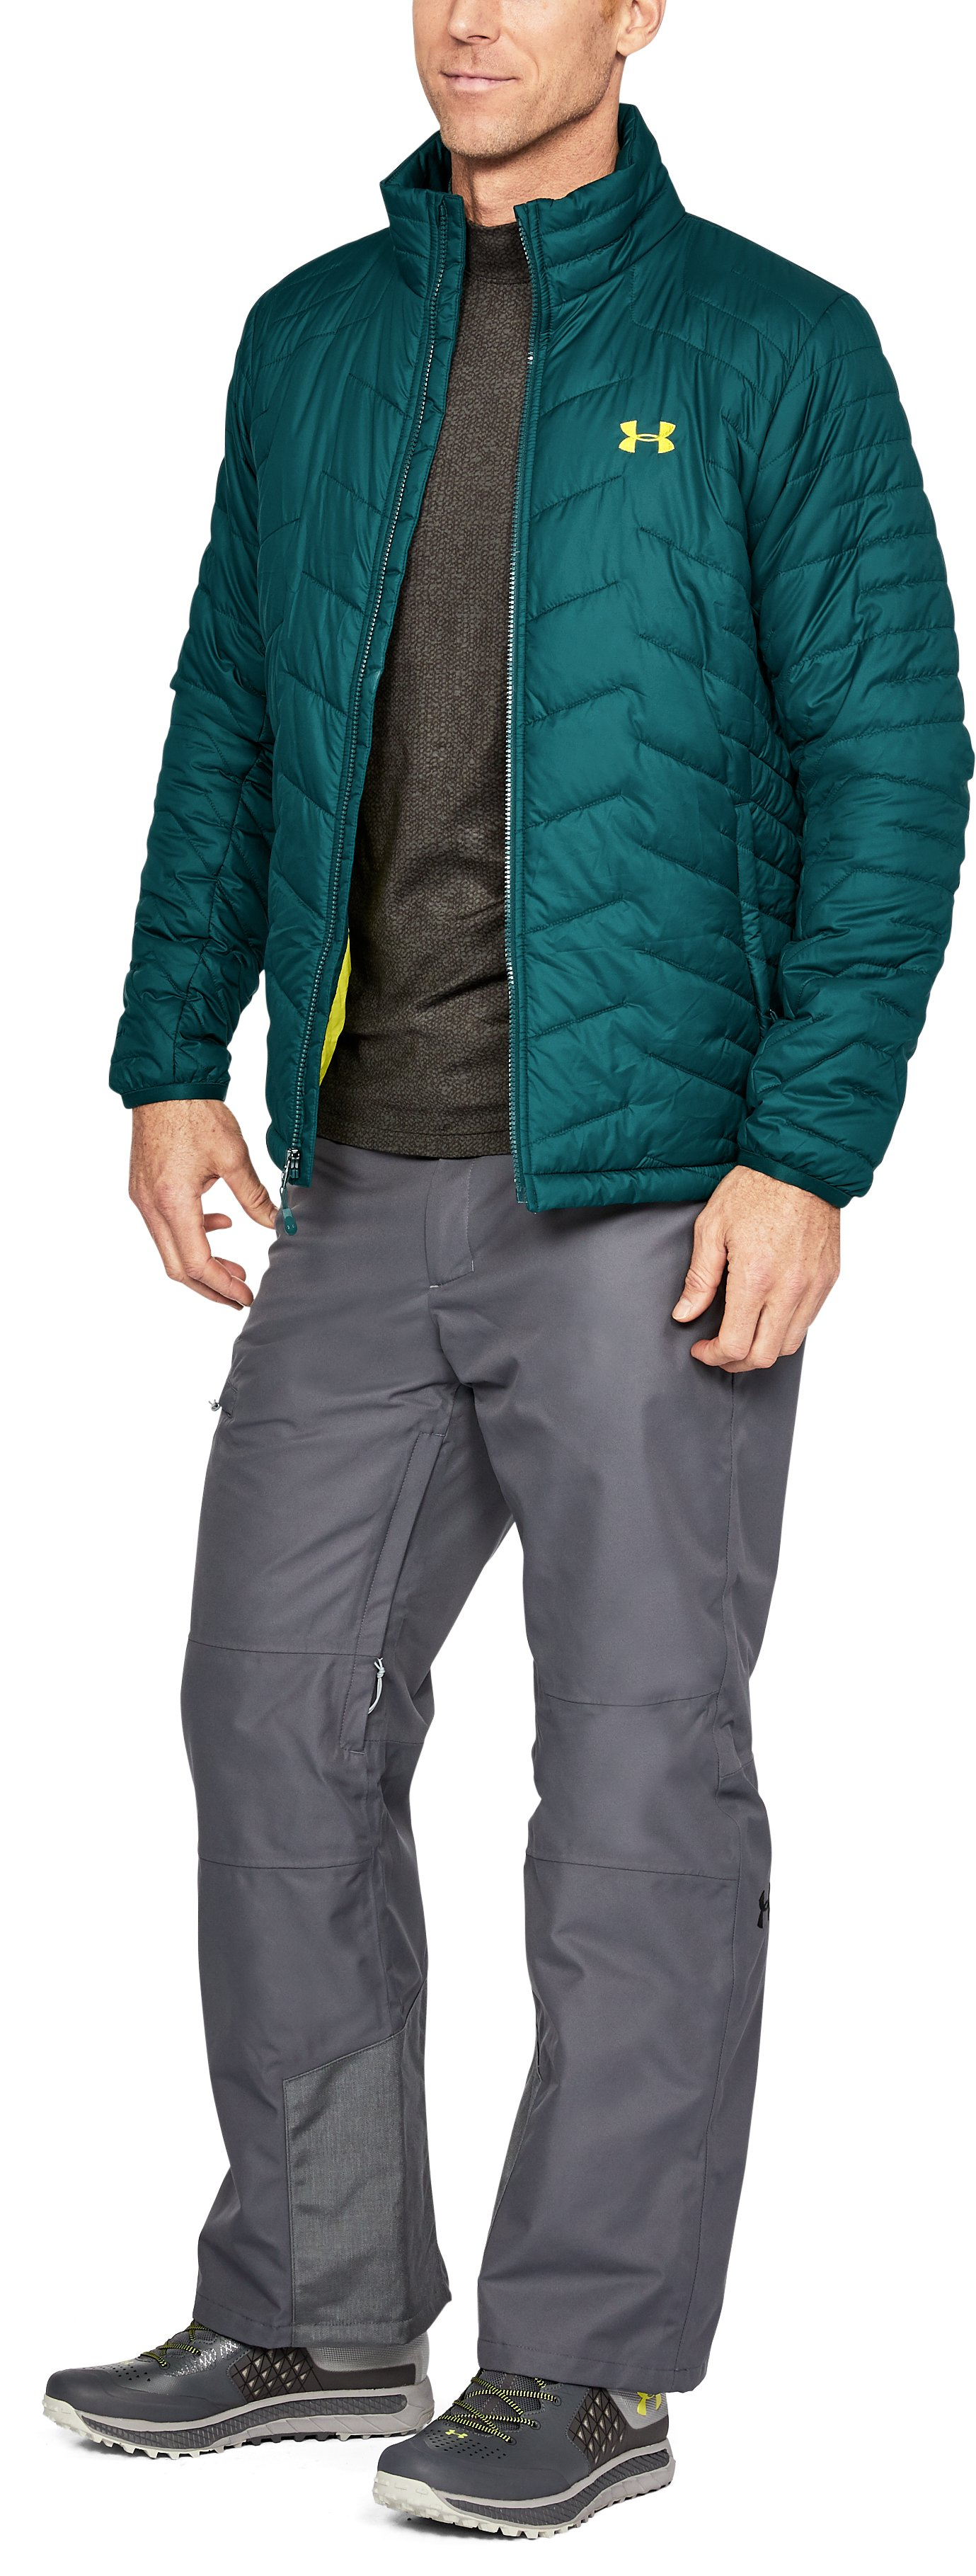 Men's ColdGear® Reactor Jacket, ARDEN GREEN,